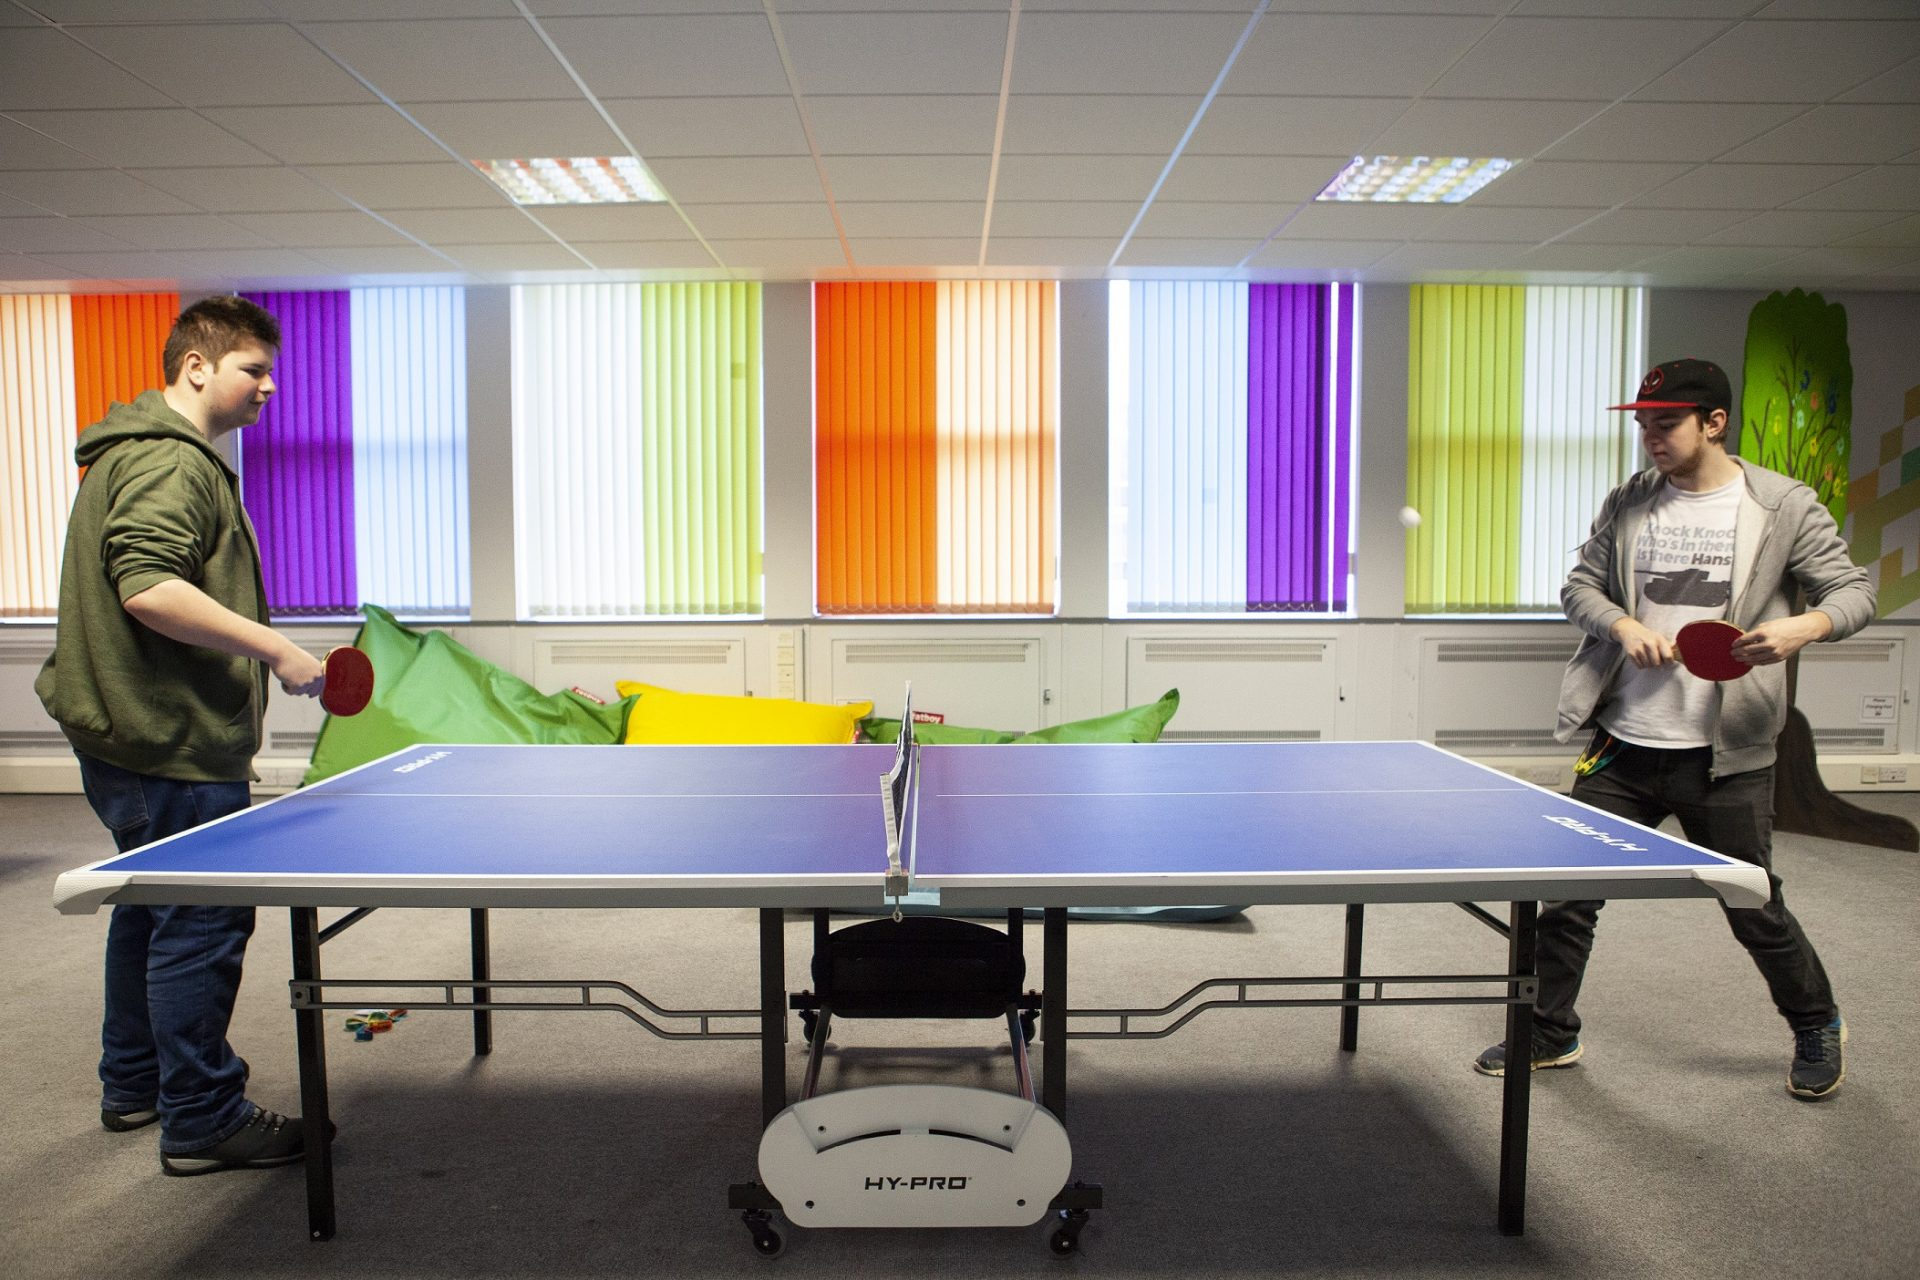 Cornwall College St Austell student zone called The Space - students playing table tennis